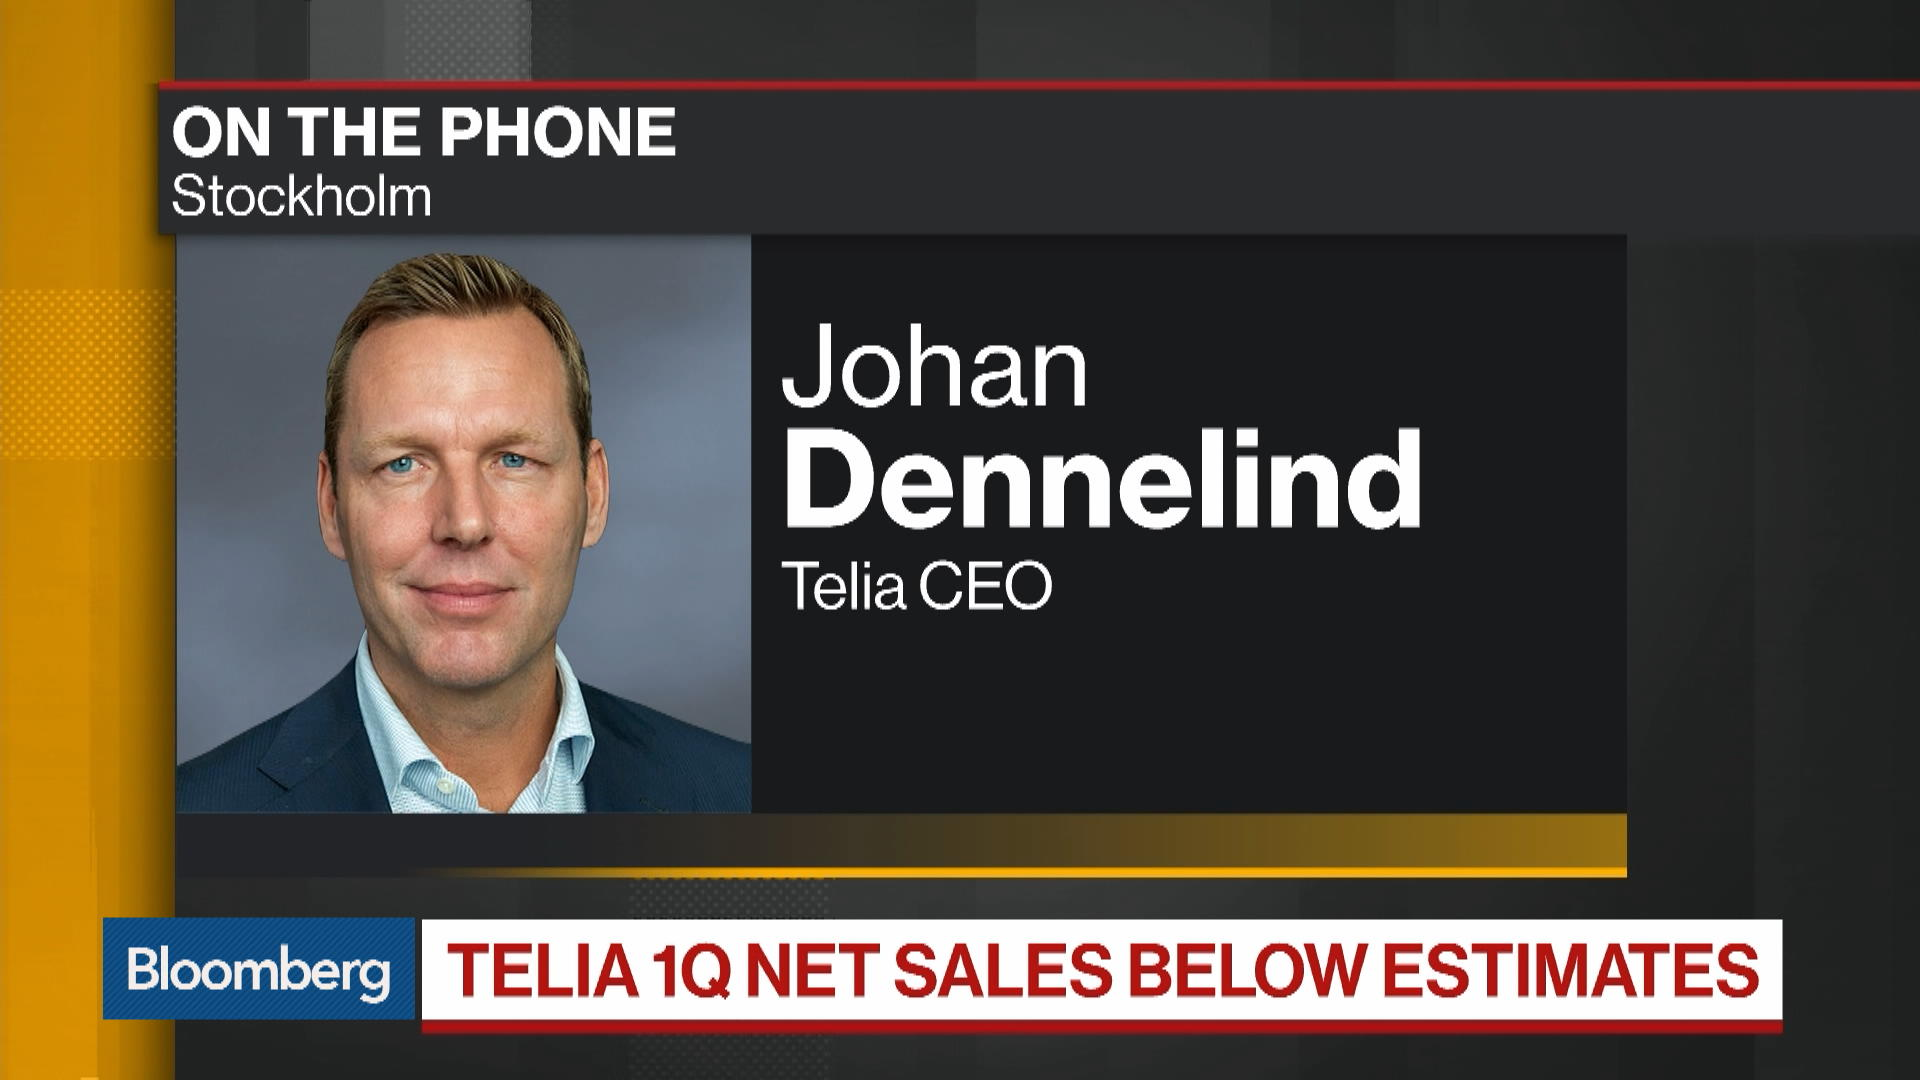 Telia CEO: We Are Confident and Comfortable About Our Outlook for 2019